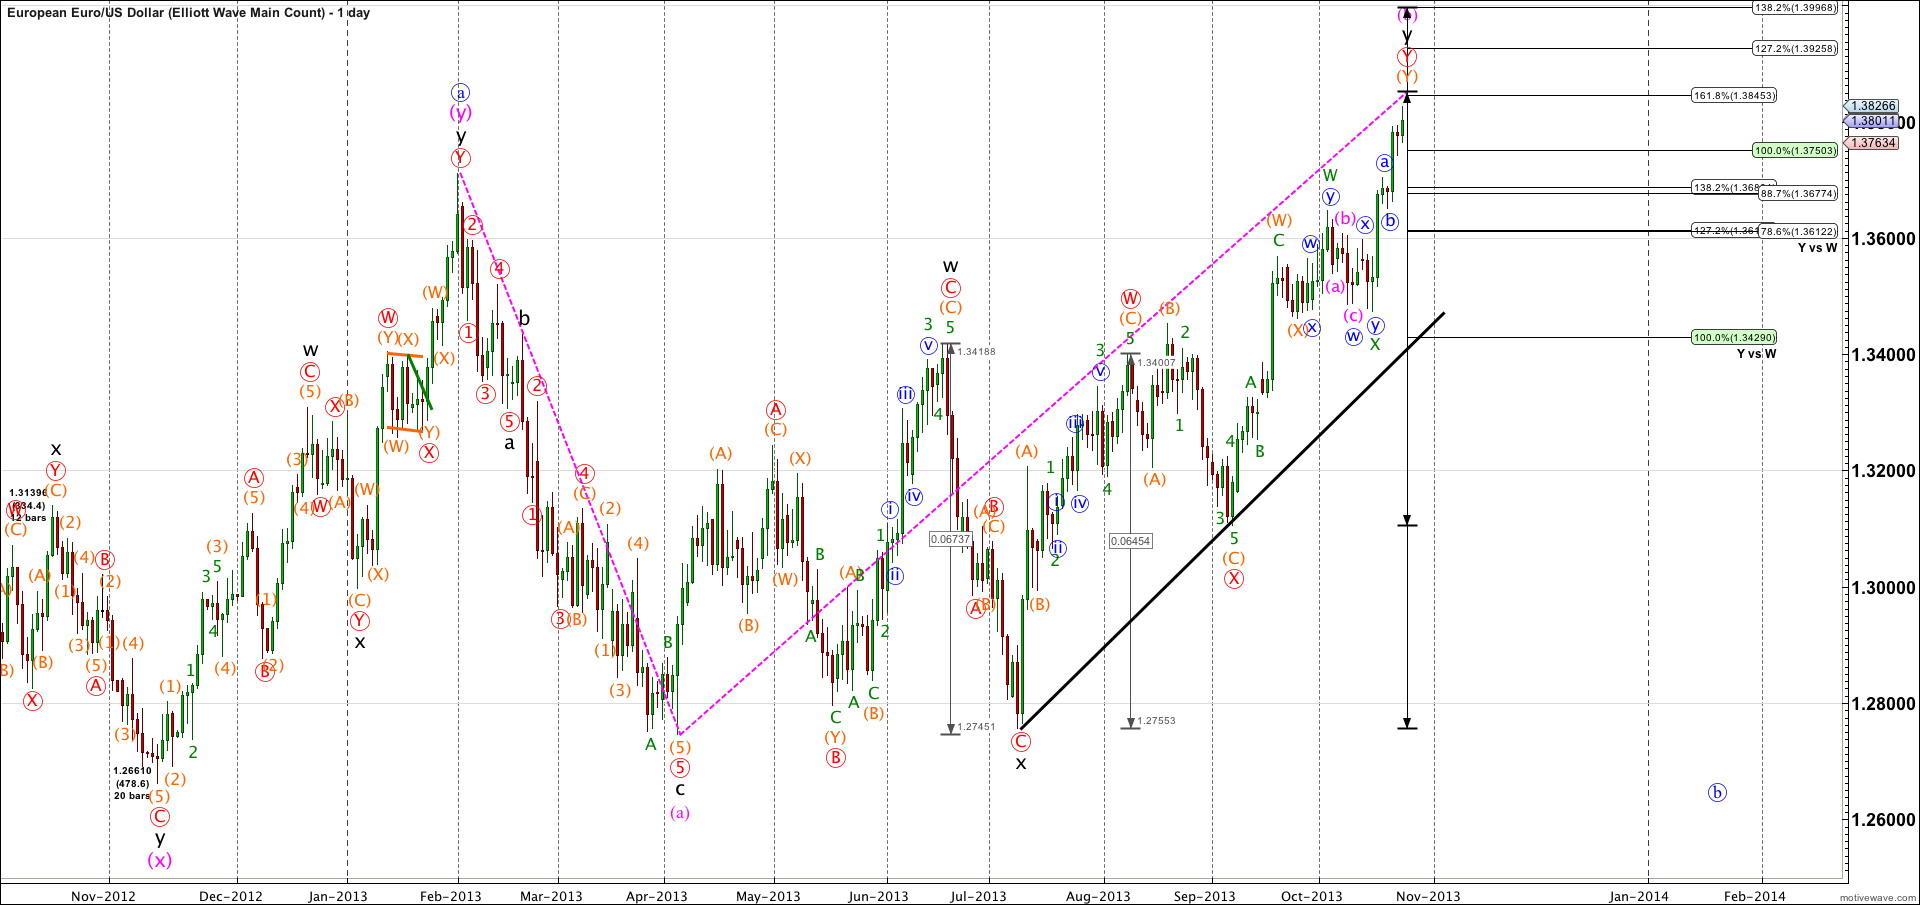 EURUSD-Elliott-Wave-Main-Count-Oct-24-1400-PM-1-day